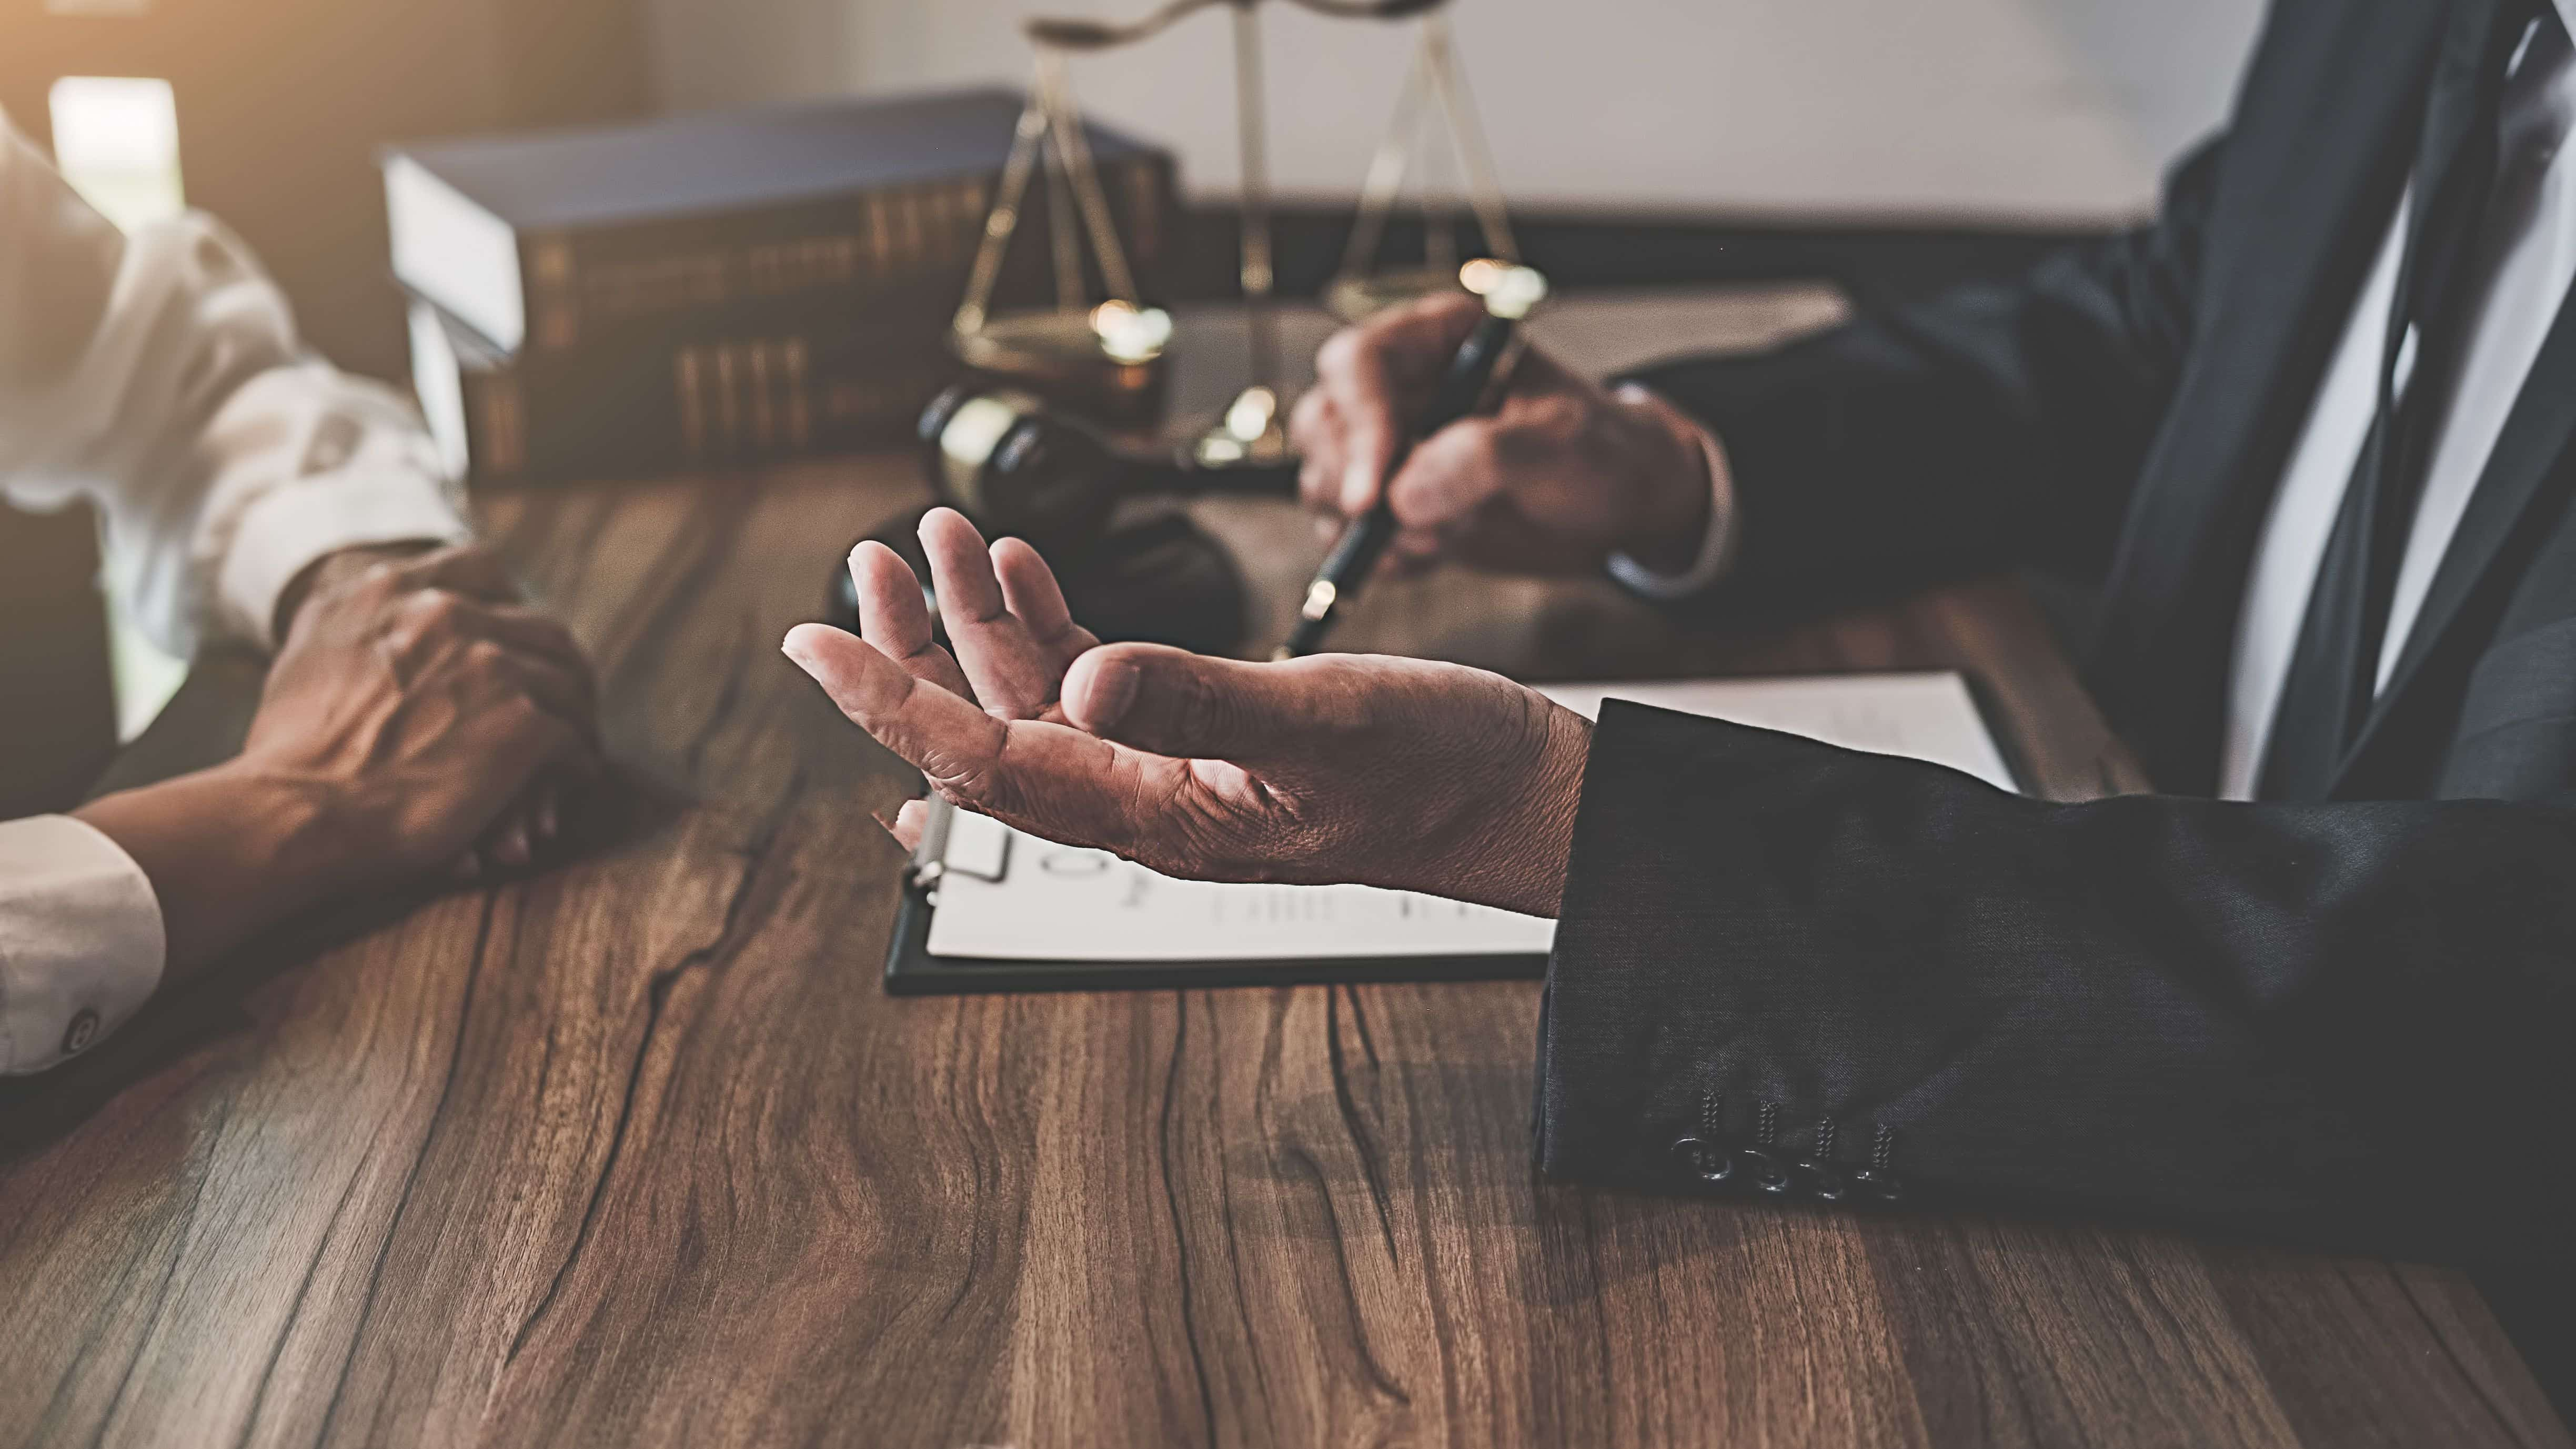 Partnership with An Attorney